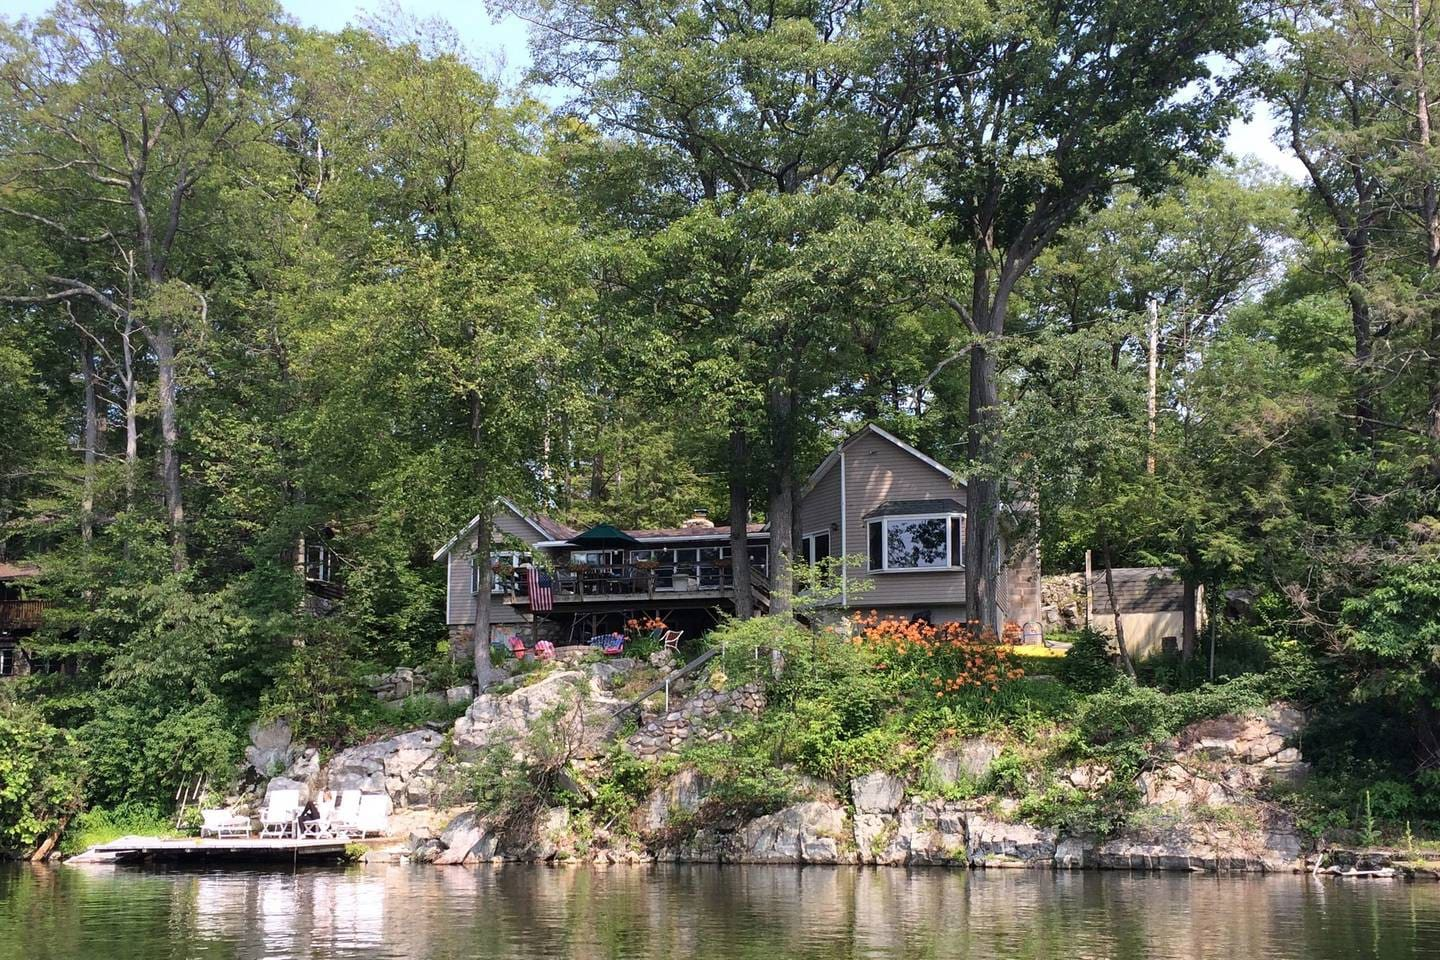 My favorite picture of the house from the lake. I didn't realize it but I'm actually in this picture on the dock on a chair.